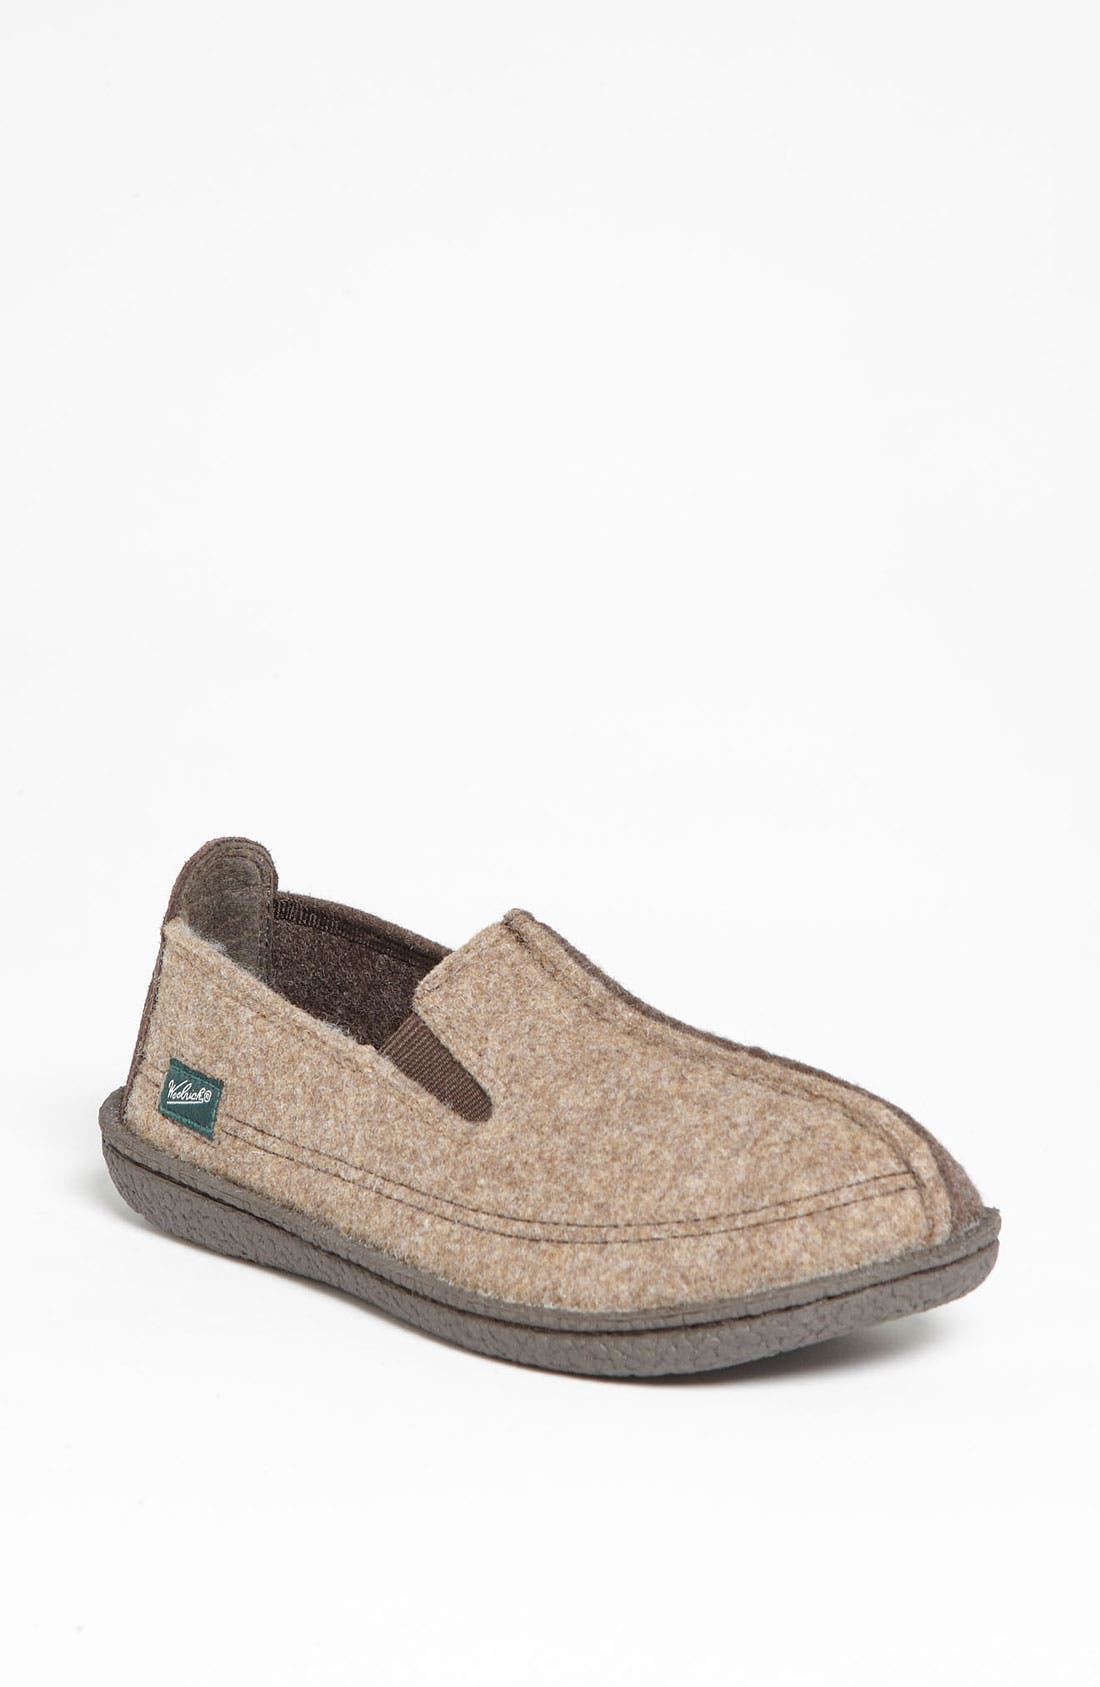 Alternate Image 1 Selected - Woolrich 'Plumtree' Slipper